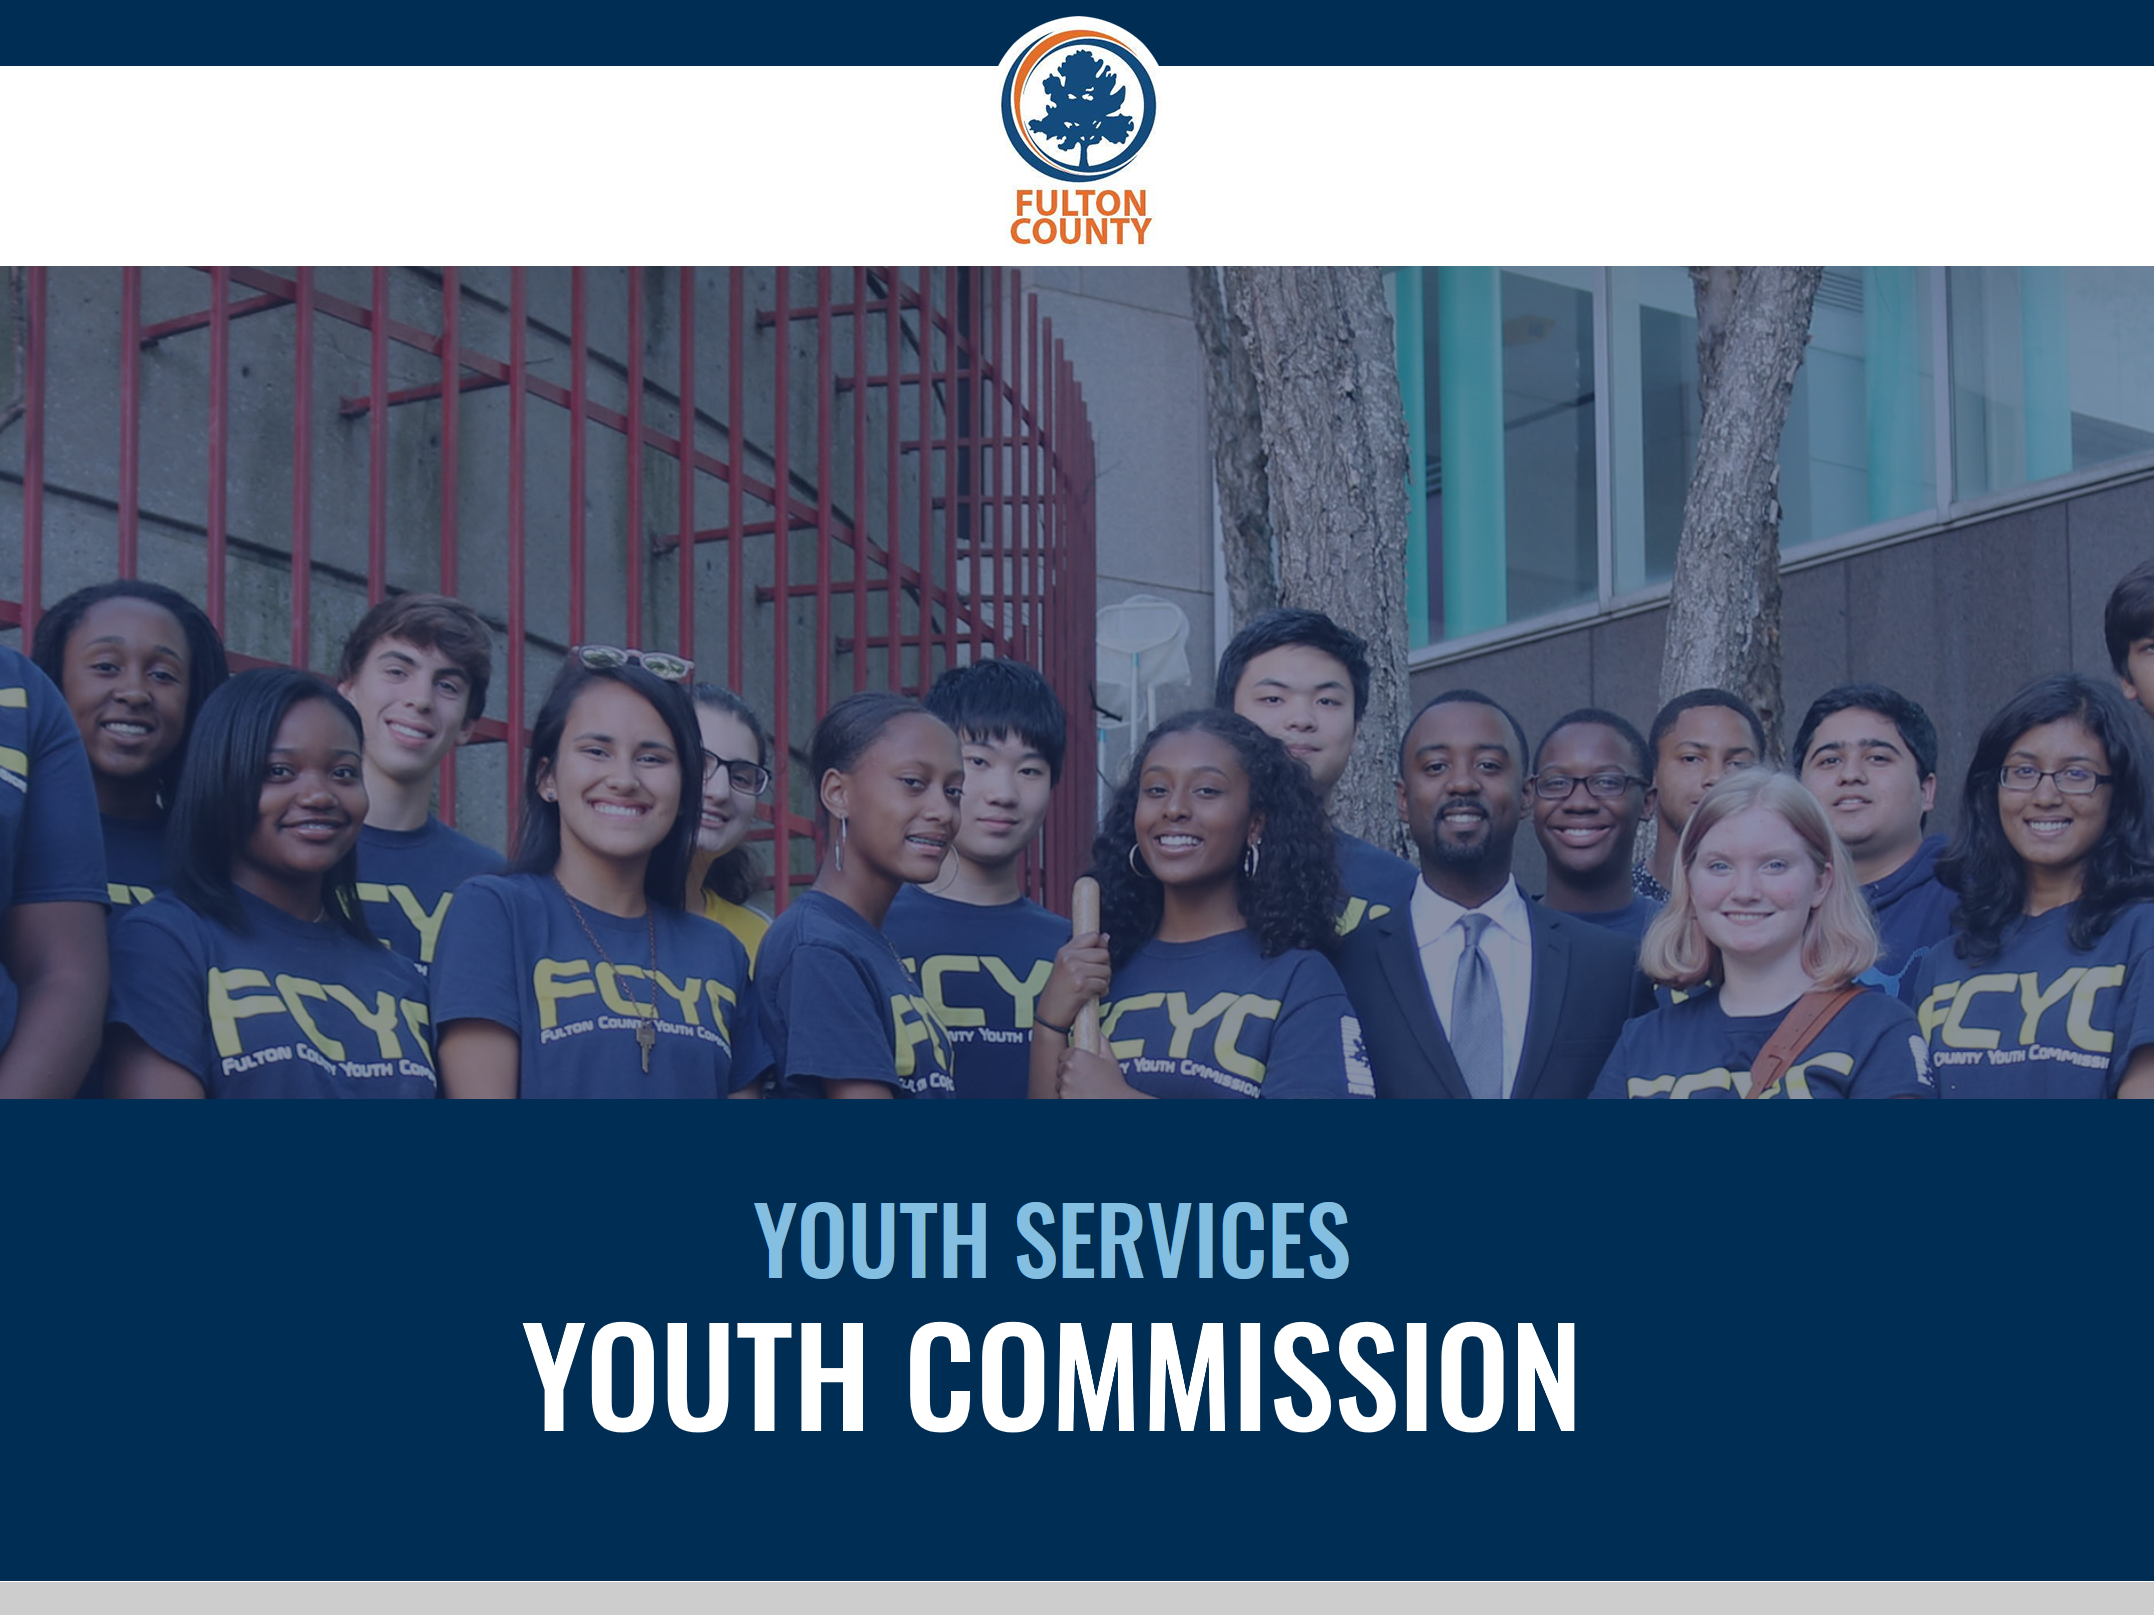 Fulton County Youth Commission